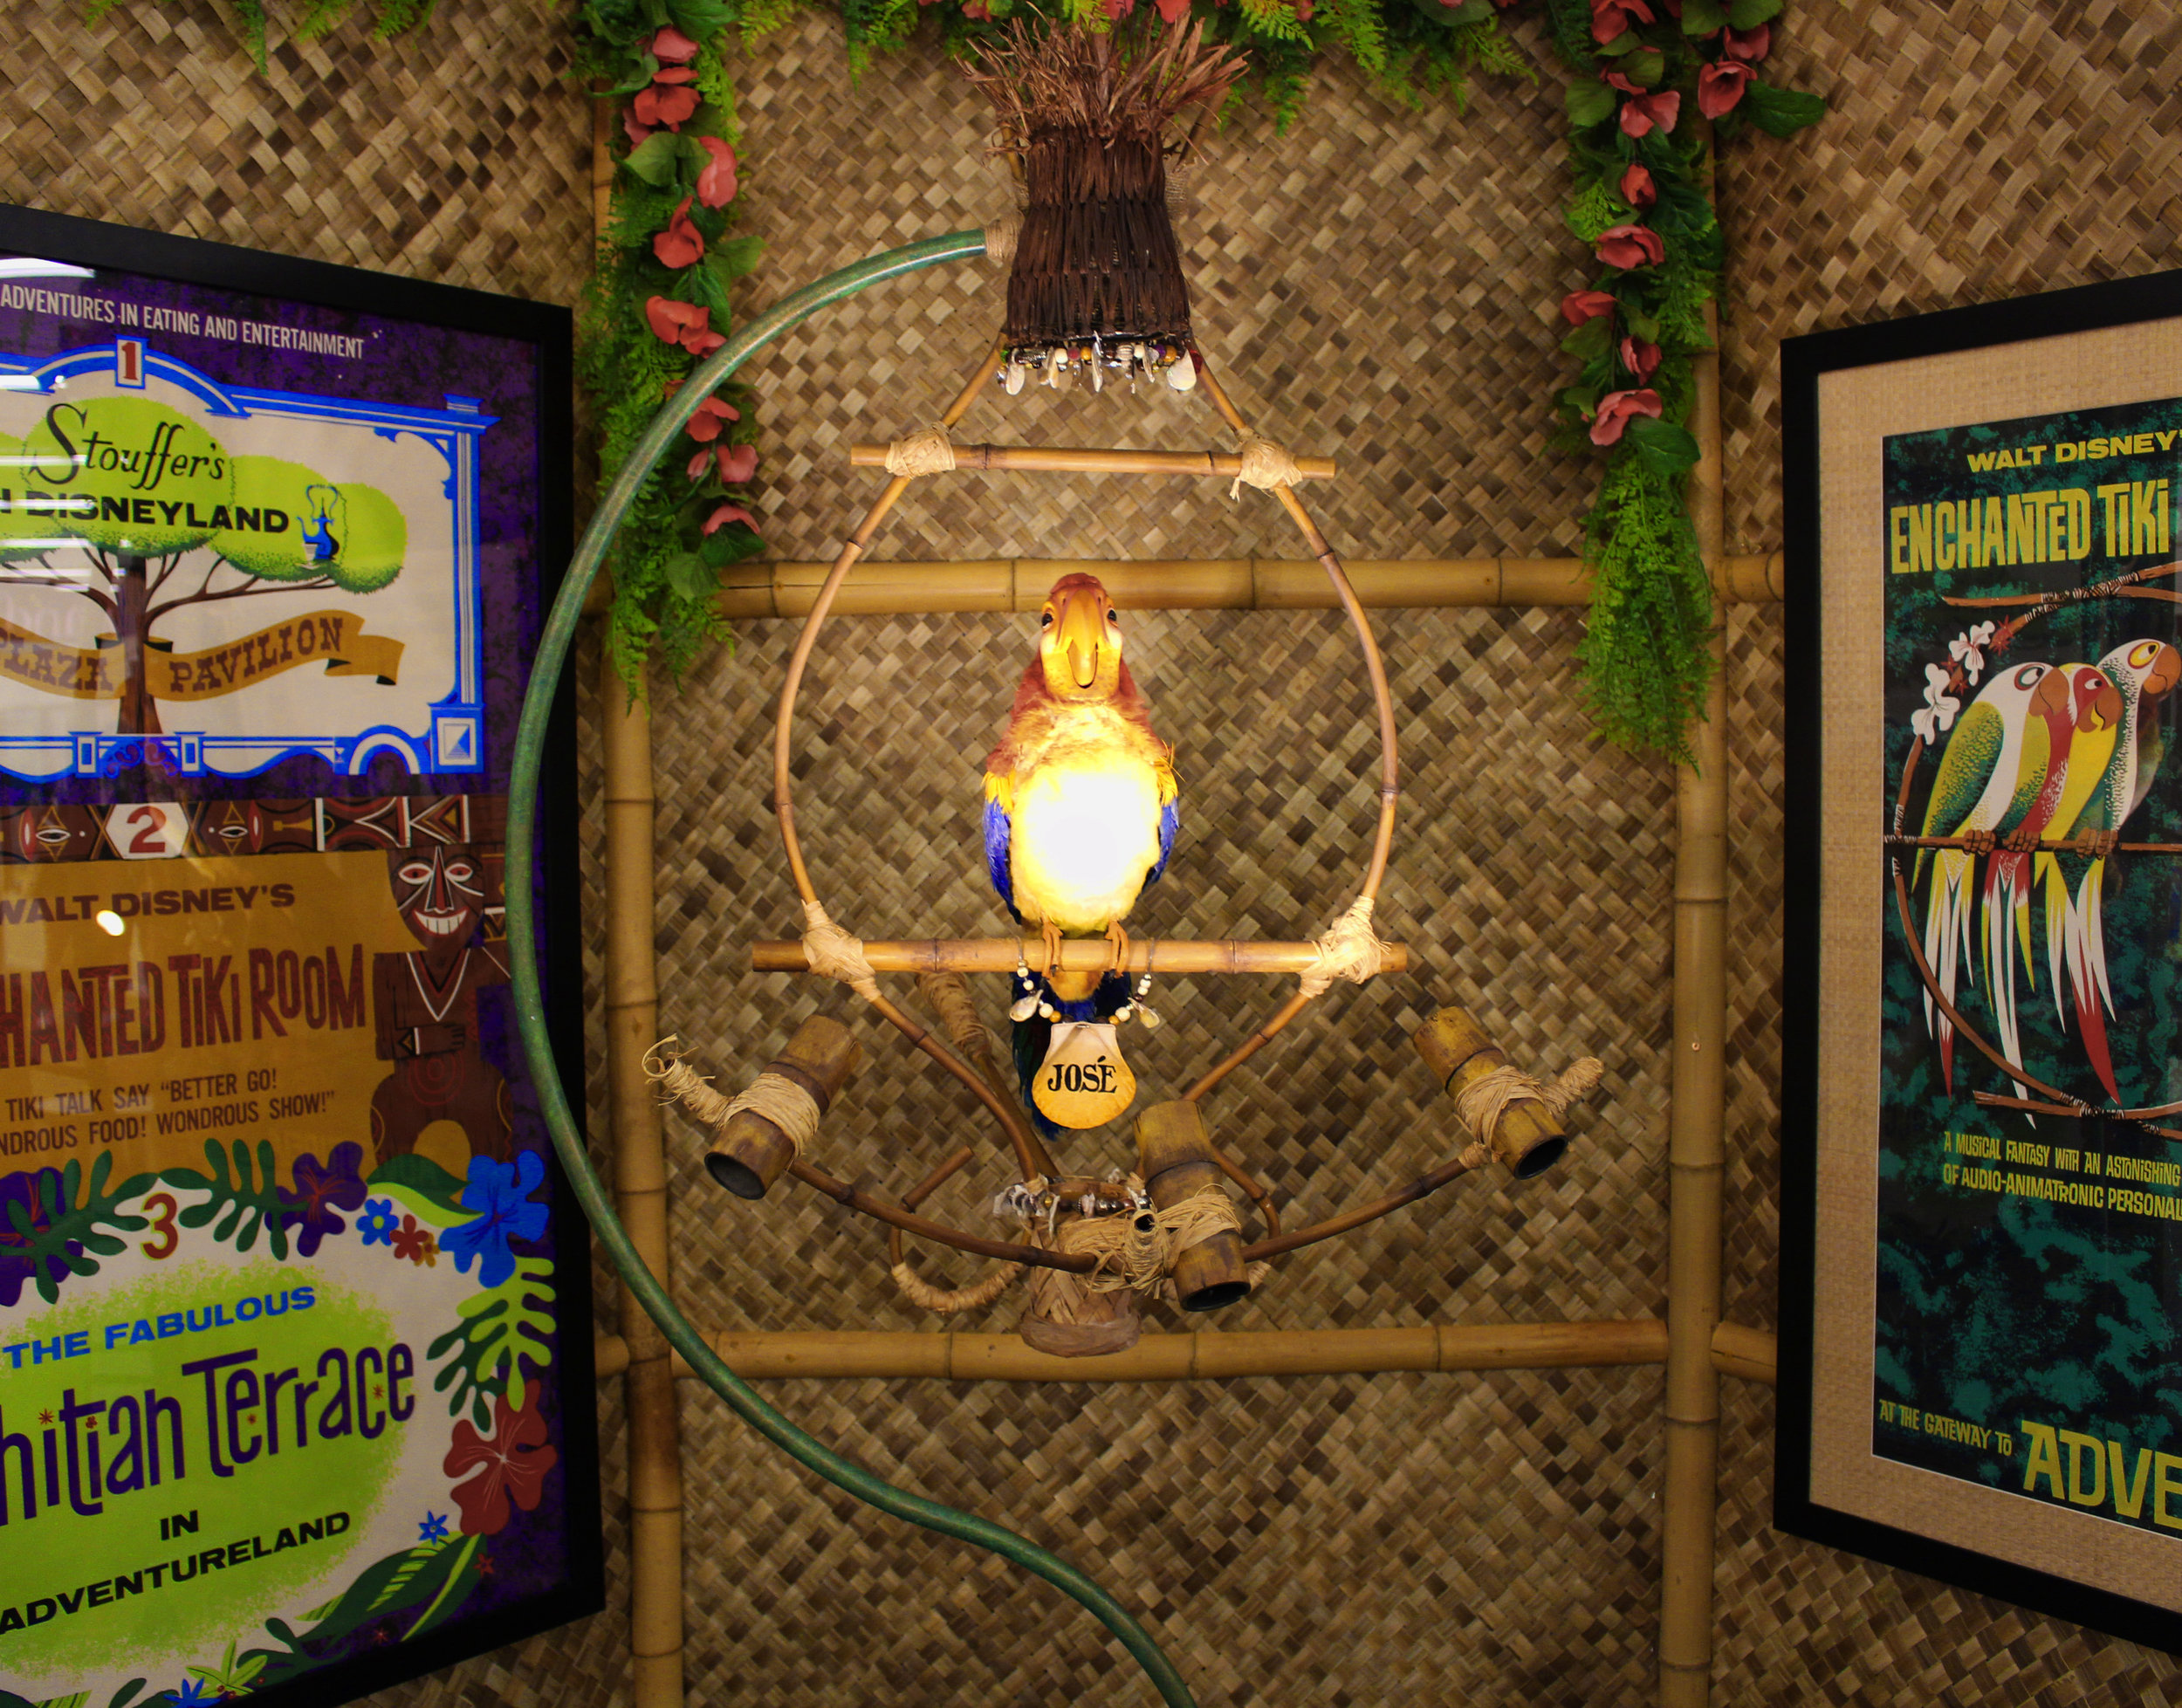 Jose from the Enchanted Tiki Room was without a doubt one of the most popular and spellbinding items at the exhibit. Jose ended up selling for $370,000.